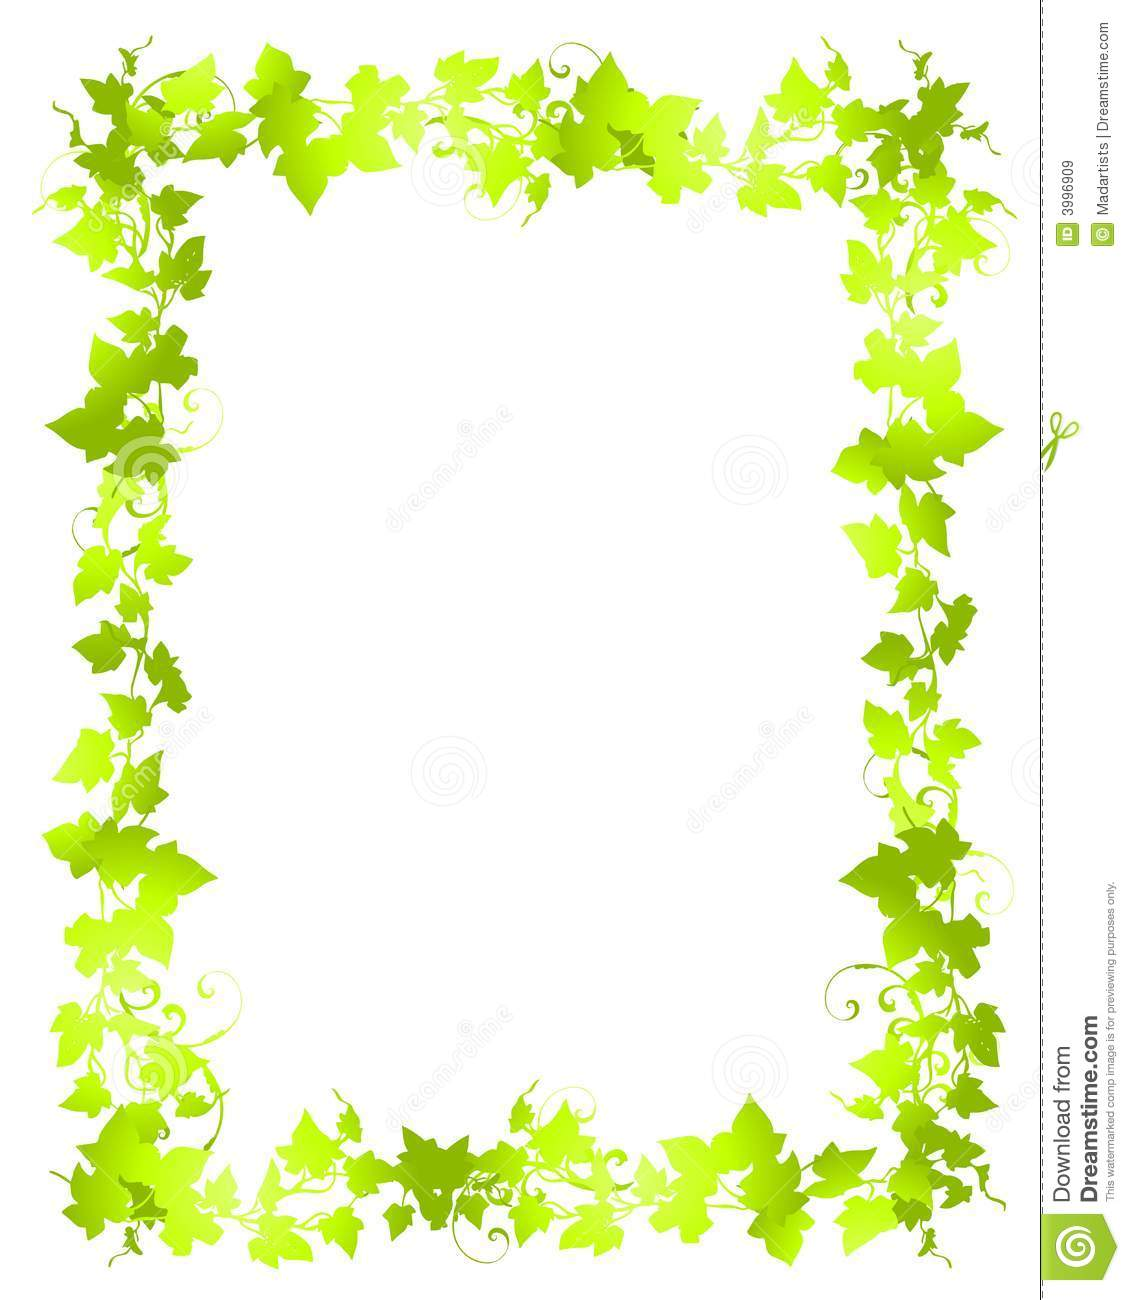 green vine leaf frame borders stock illustration illustration of rh dreamstime com holly leaf border clip art fall leaf border clip art